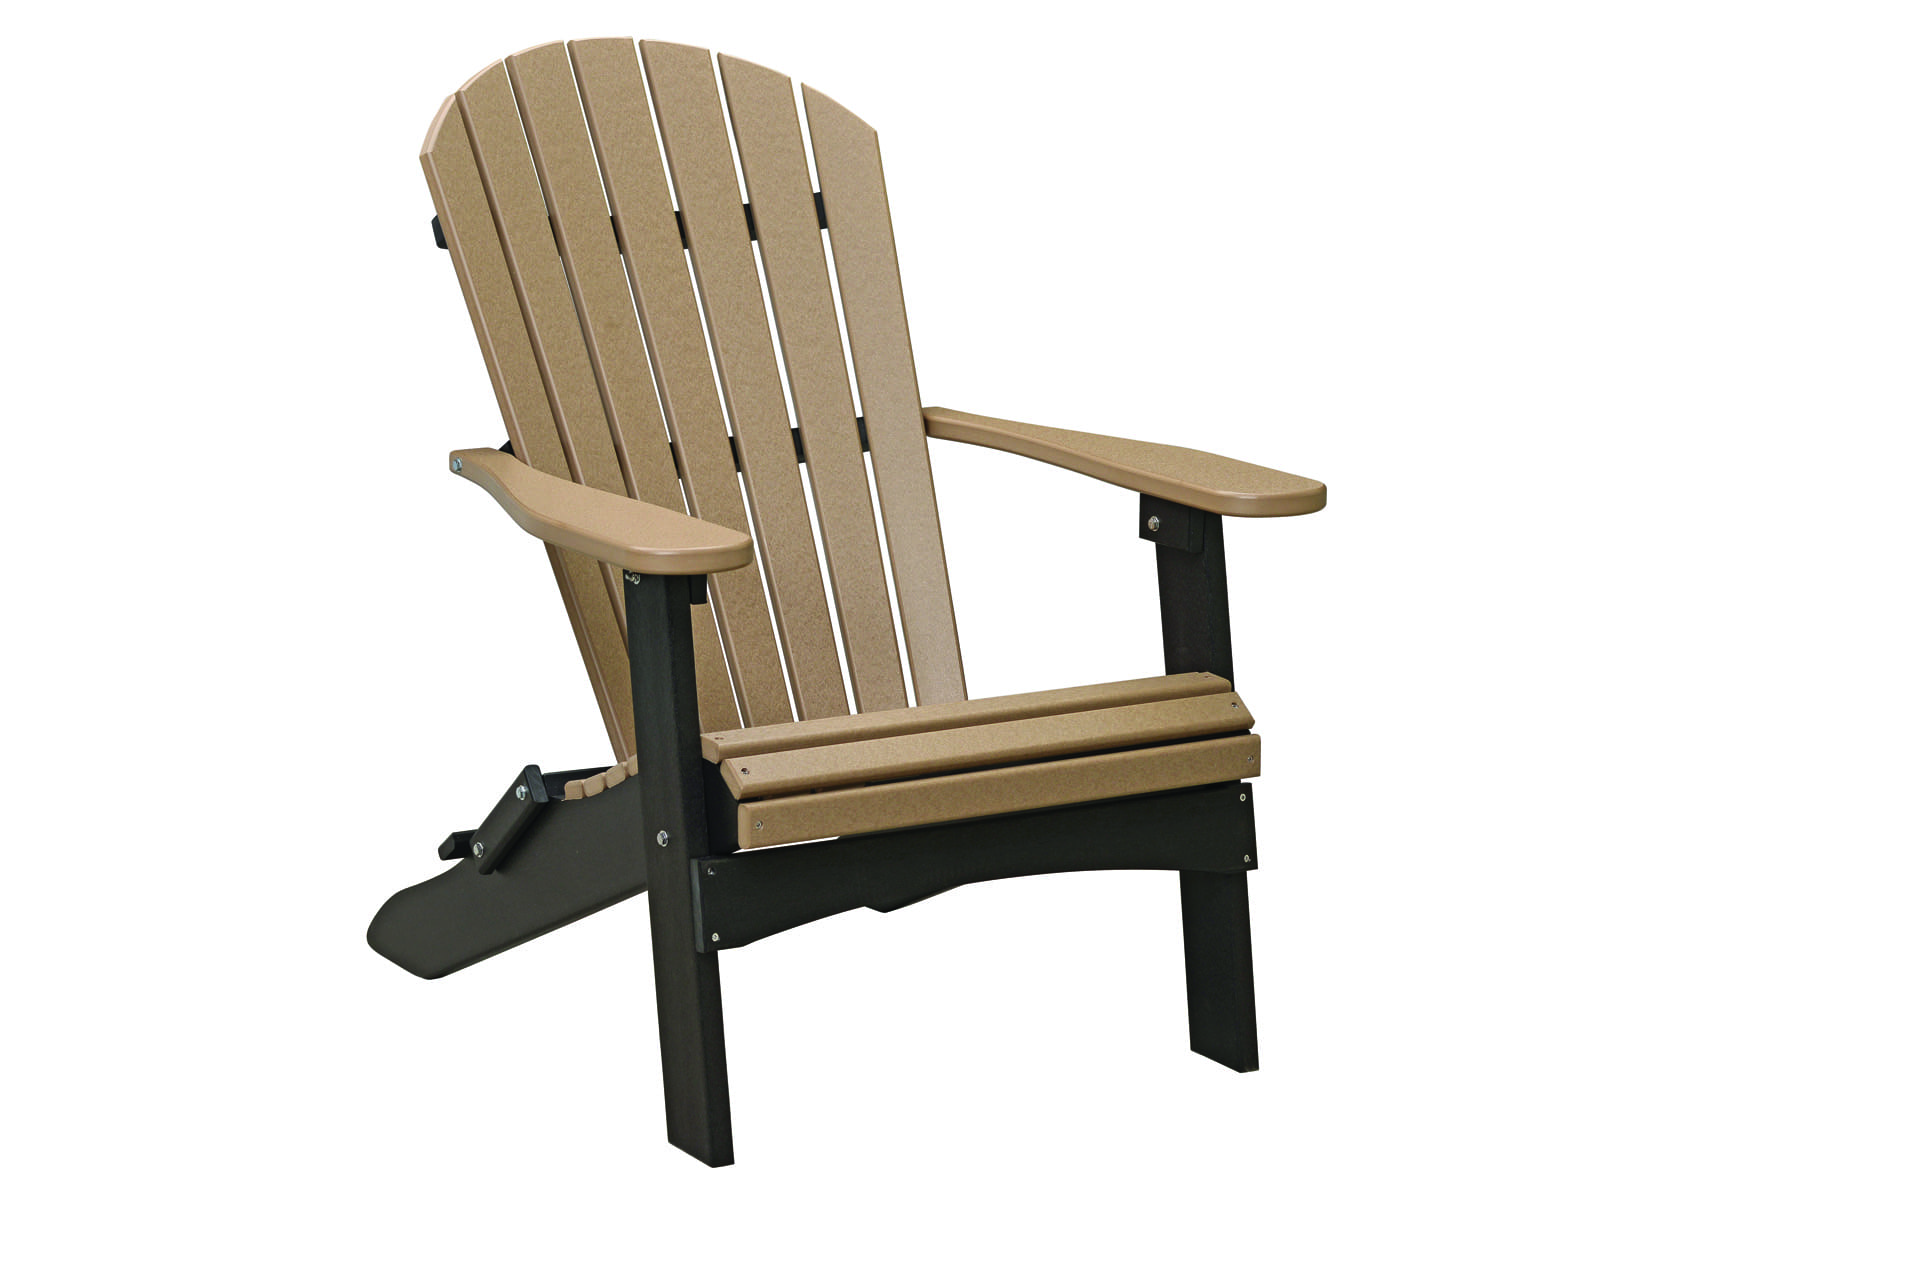 amish folding adirondack chair plans isle of palms beach rentals jim 39s structures